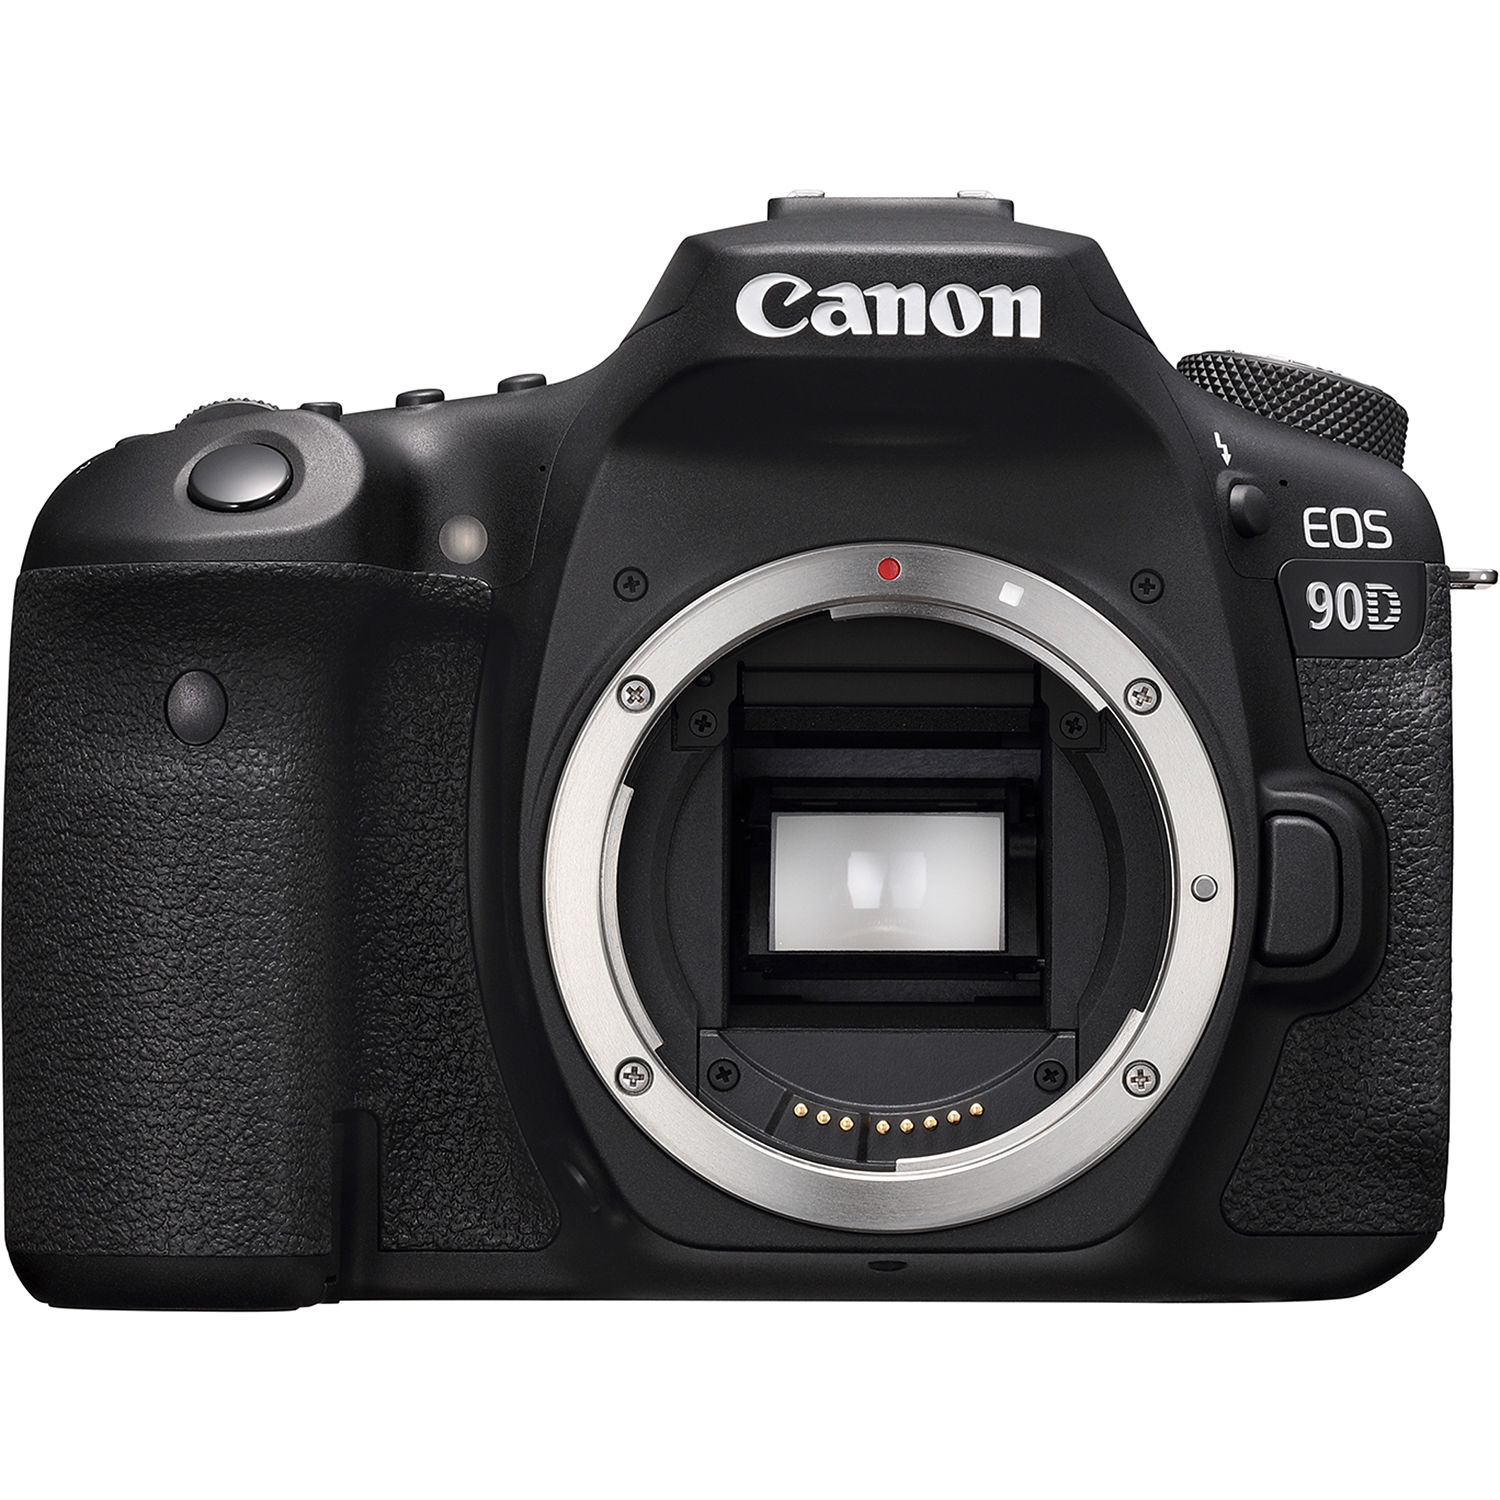 Image of Canon EOS 90D Body Only Digital SLR Camera [kit box]